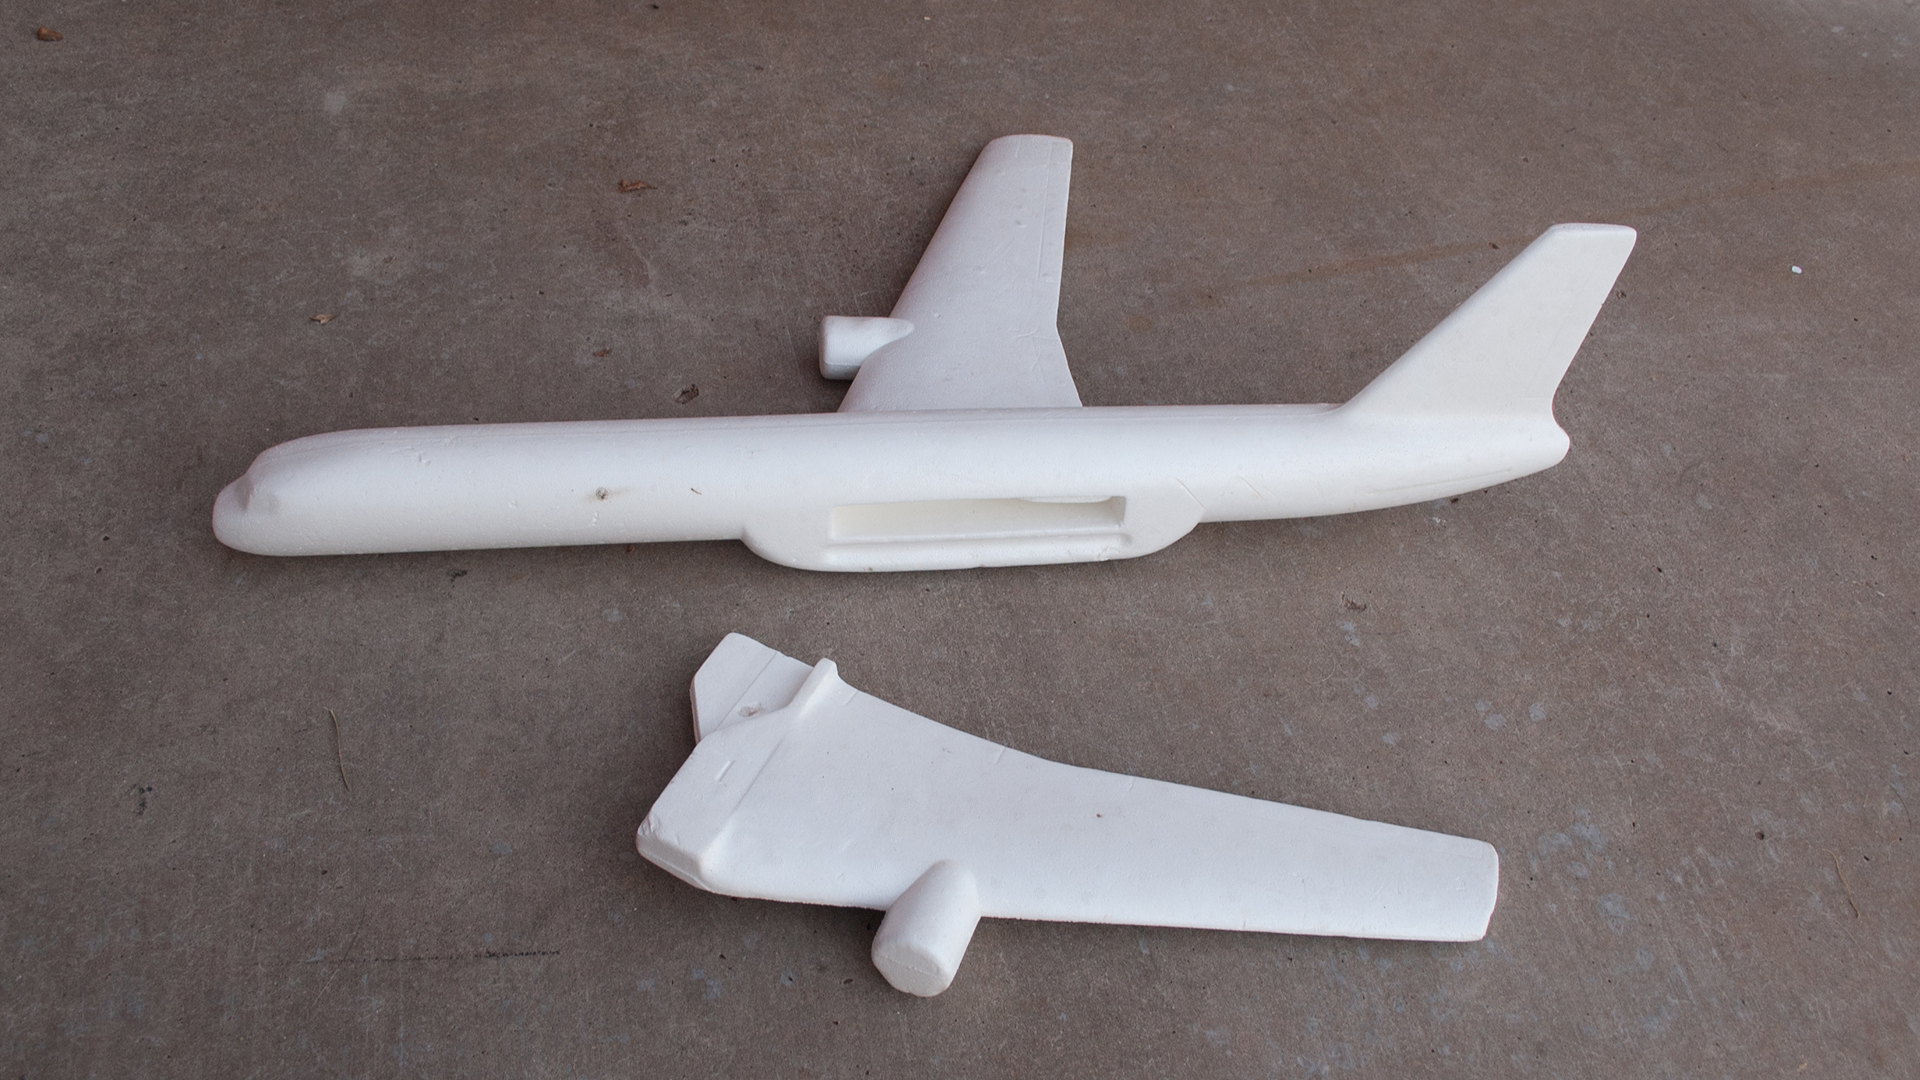 foam for rc planes with 470178 Making Airplane Airplane And Other Rc Airliners on 3 besides Model aircraft Internal  bustion also Details moreover FA22Raptor further Freeplans.